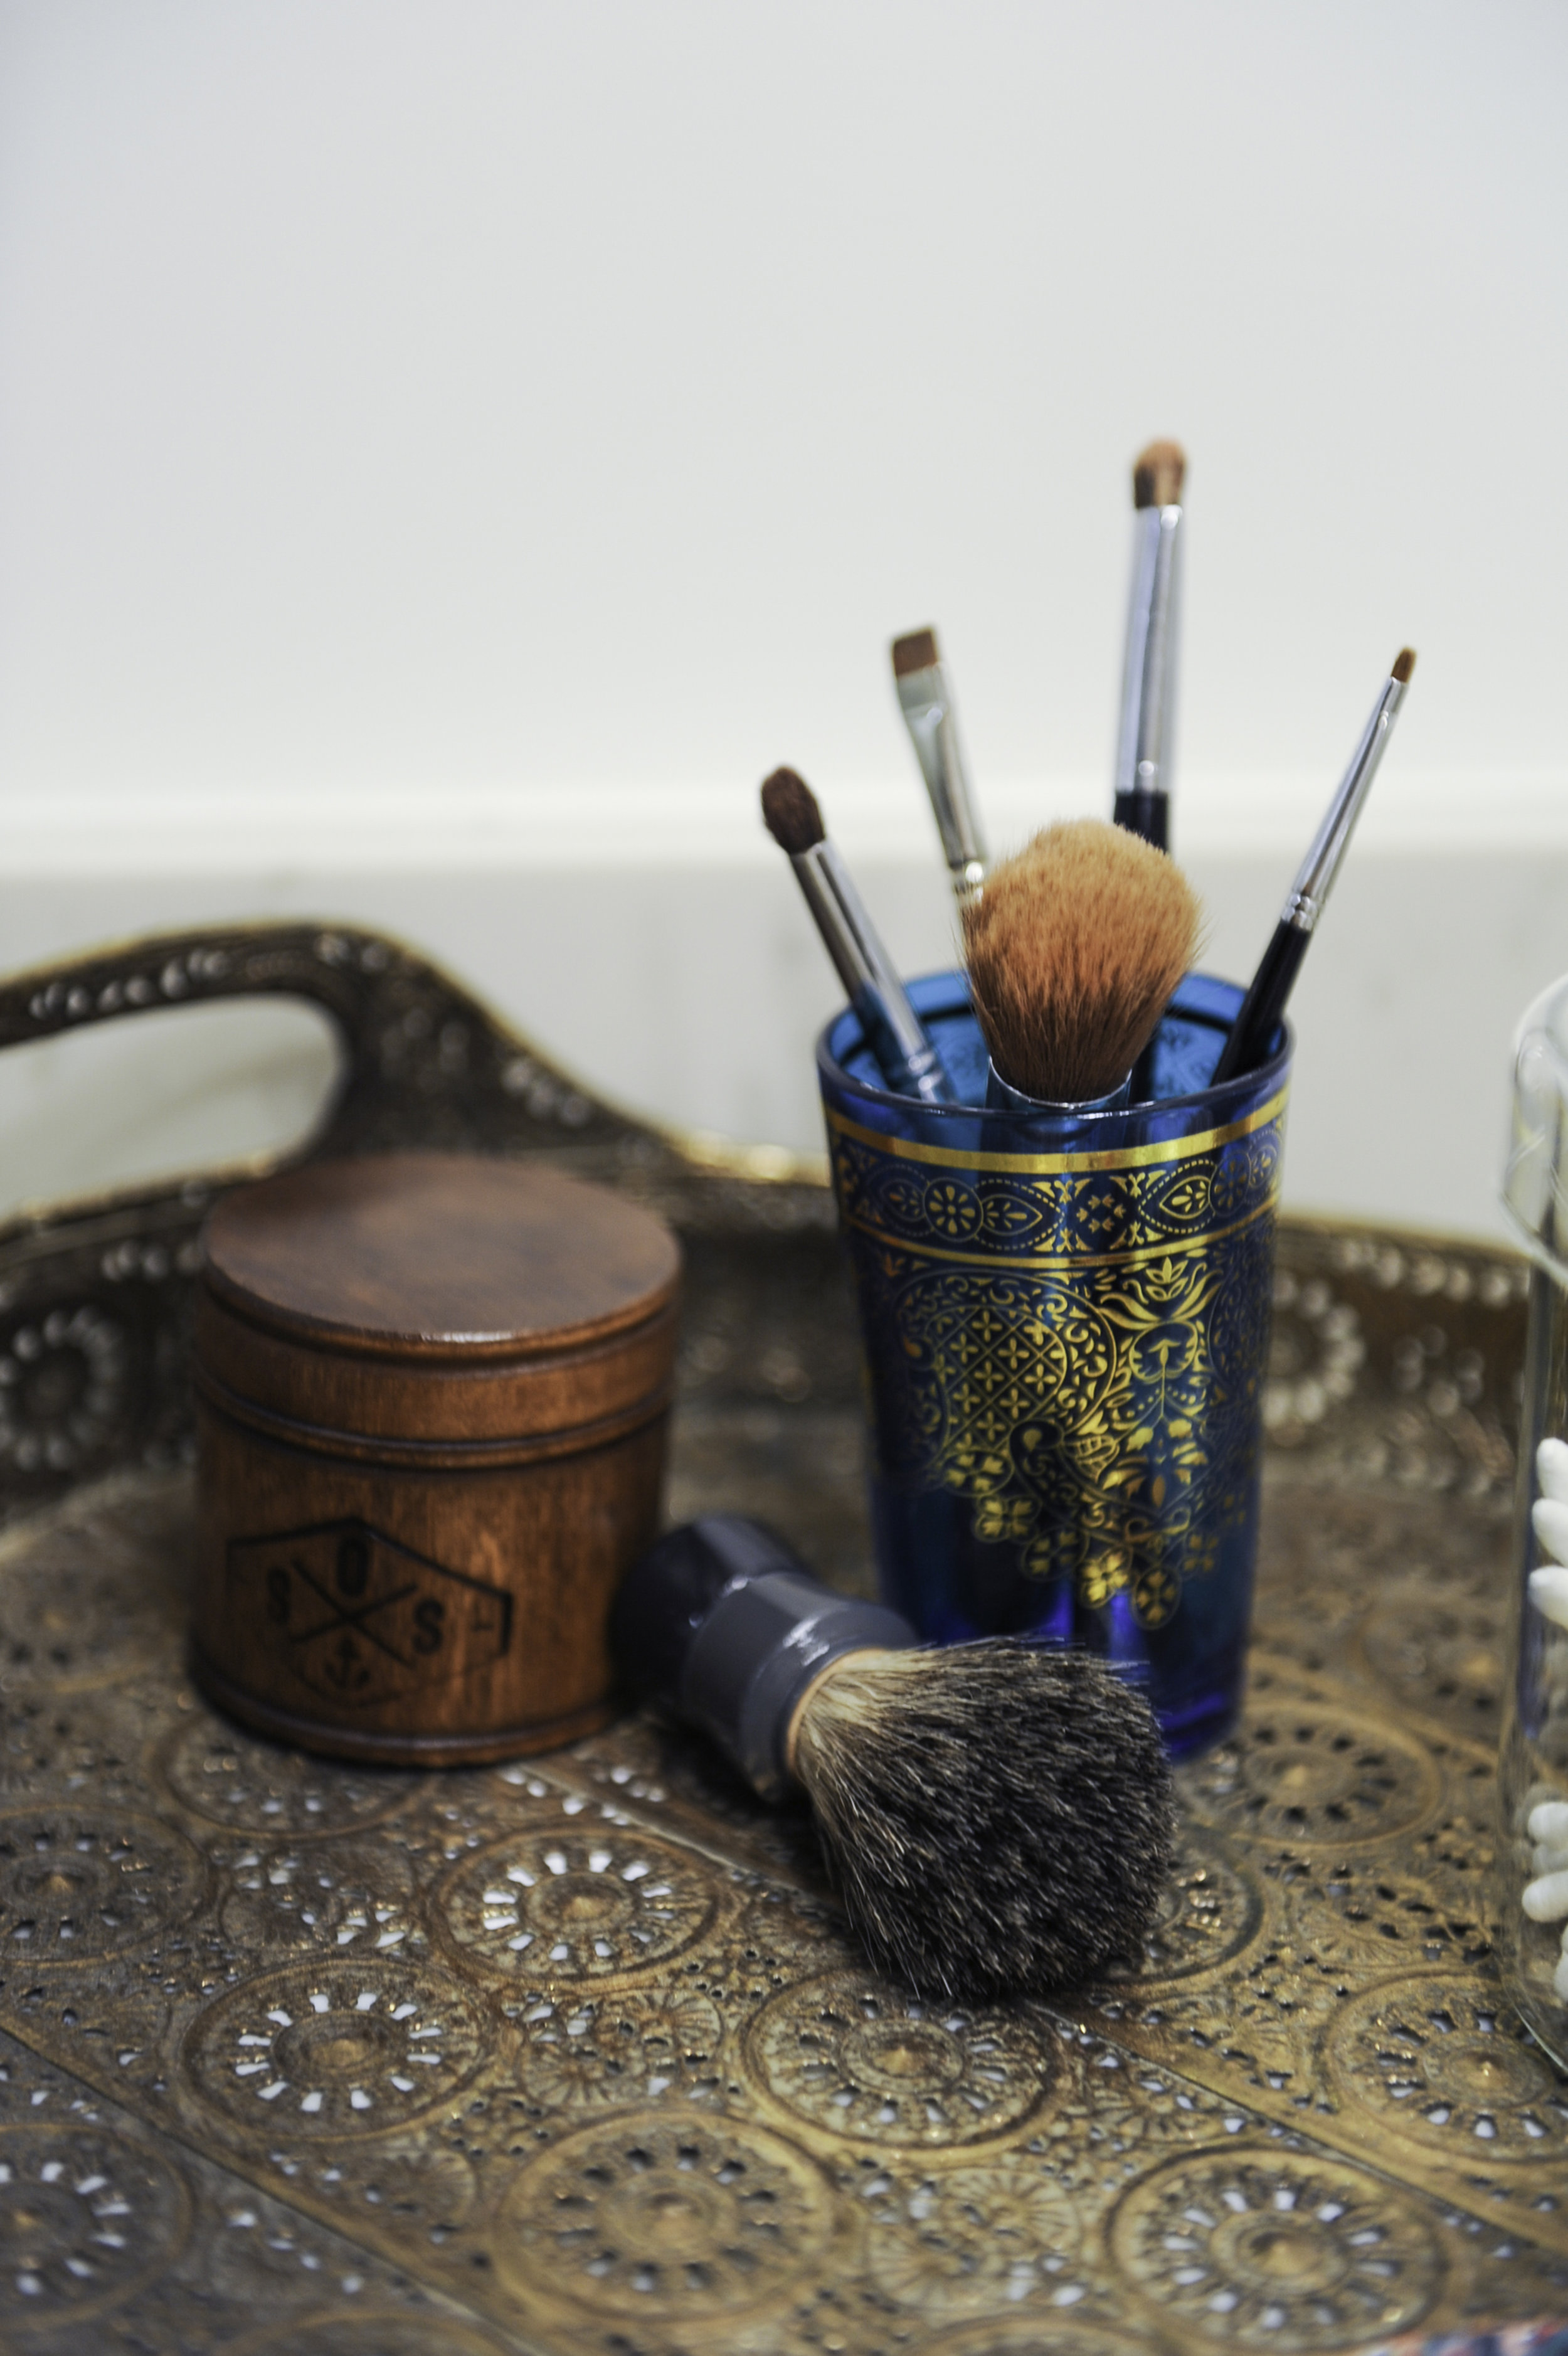 Cosmetic brushes inside a gold detailed blue glass cup and men's shaving products sit inside a decorative wooden tray.